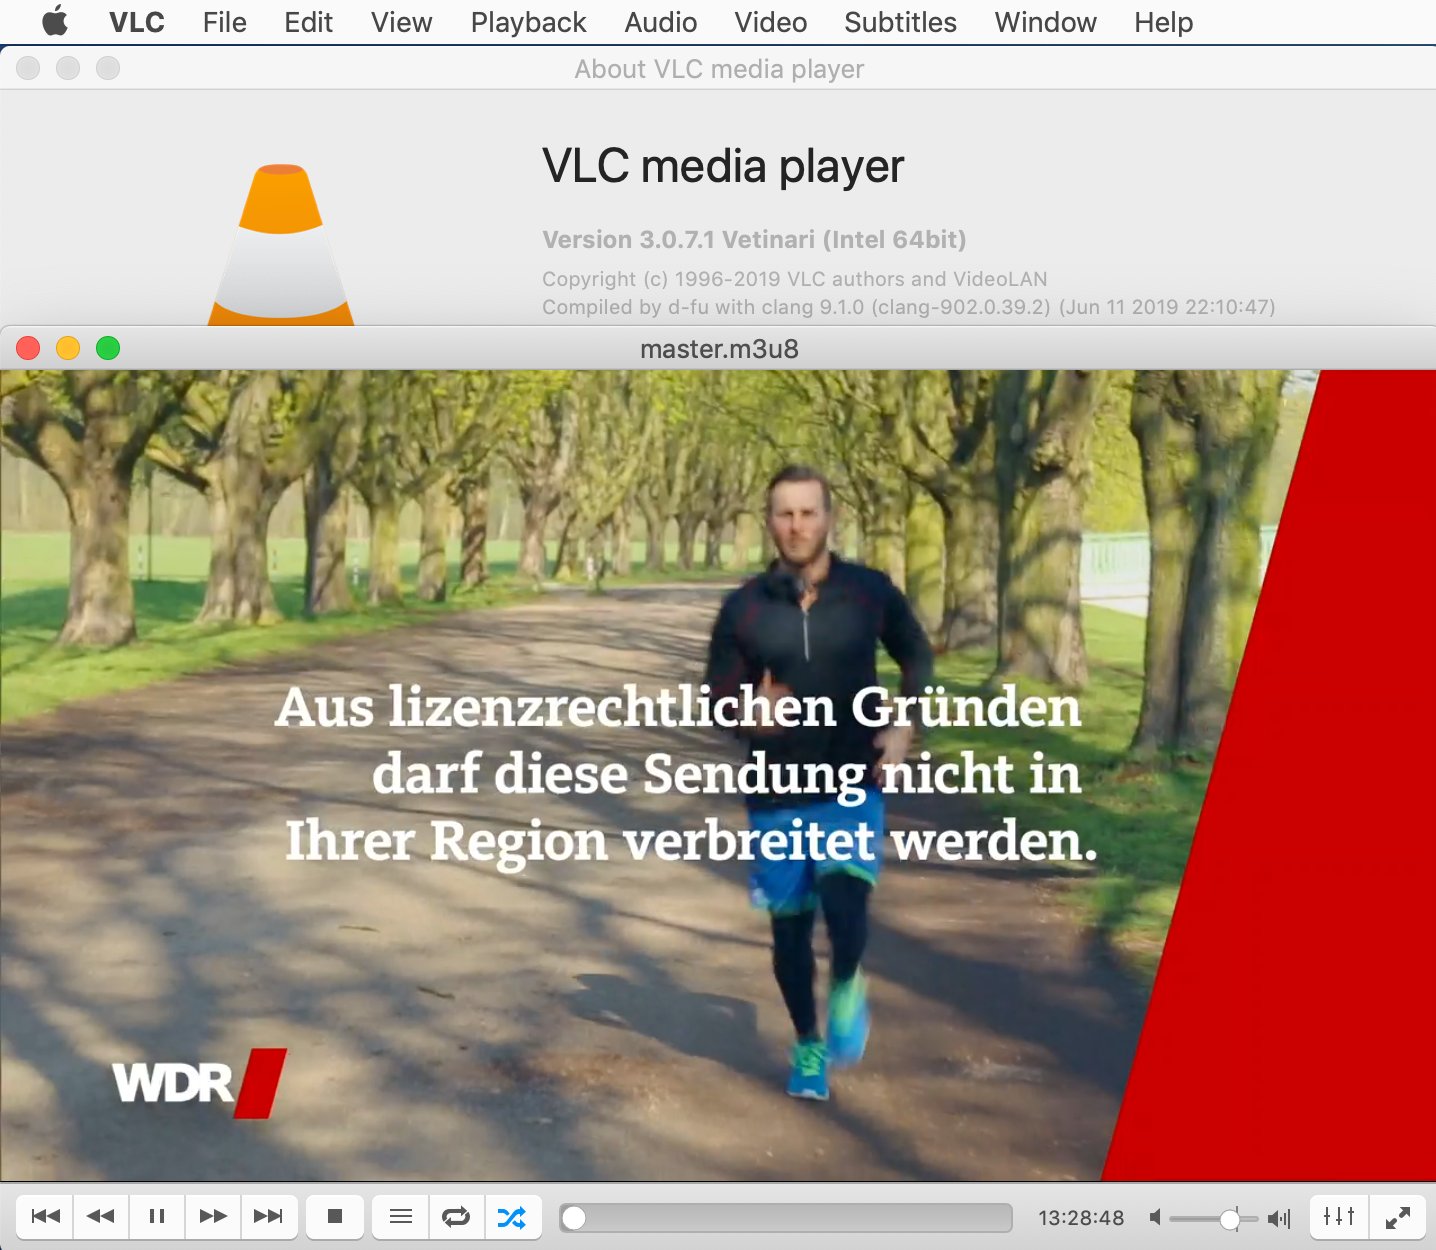 VLC_WDR.png